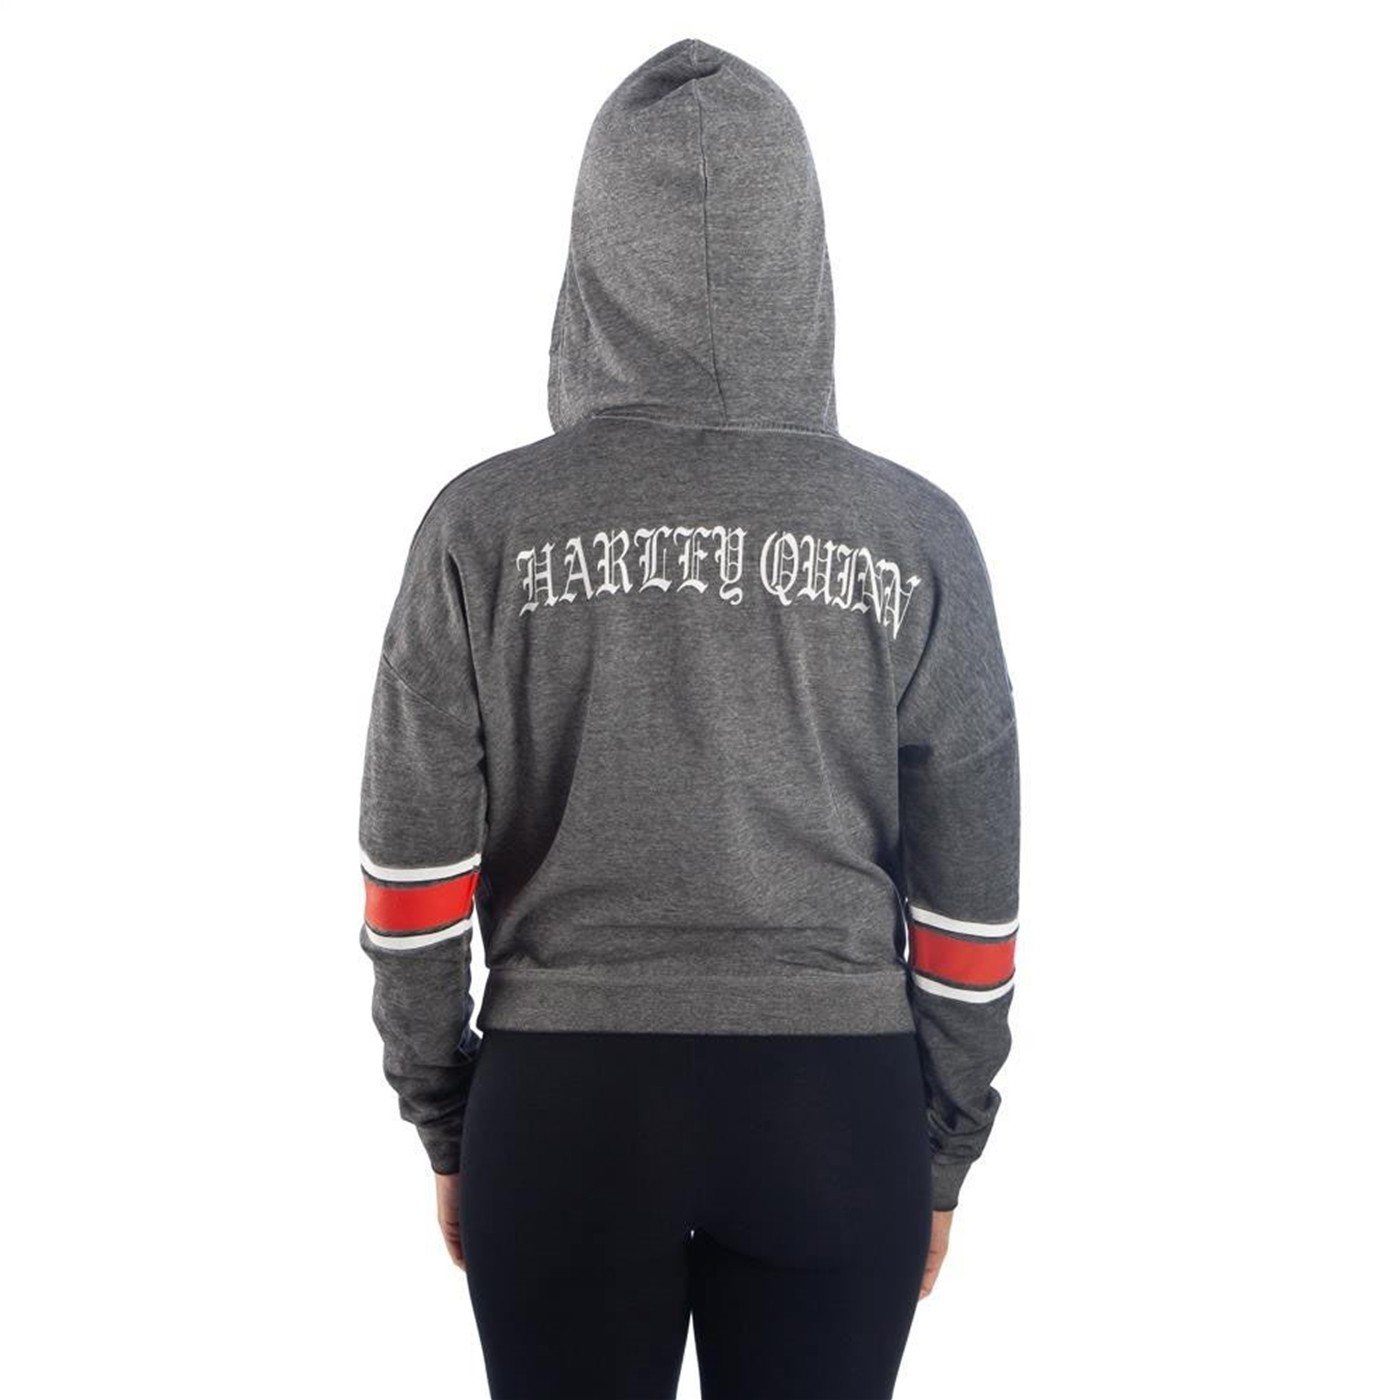 Harley Quinn Burnout Women's Hooded Pullover